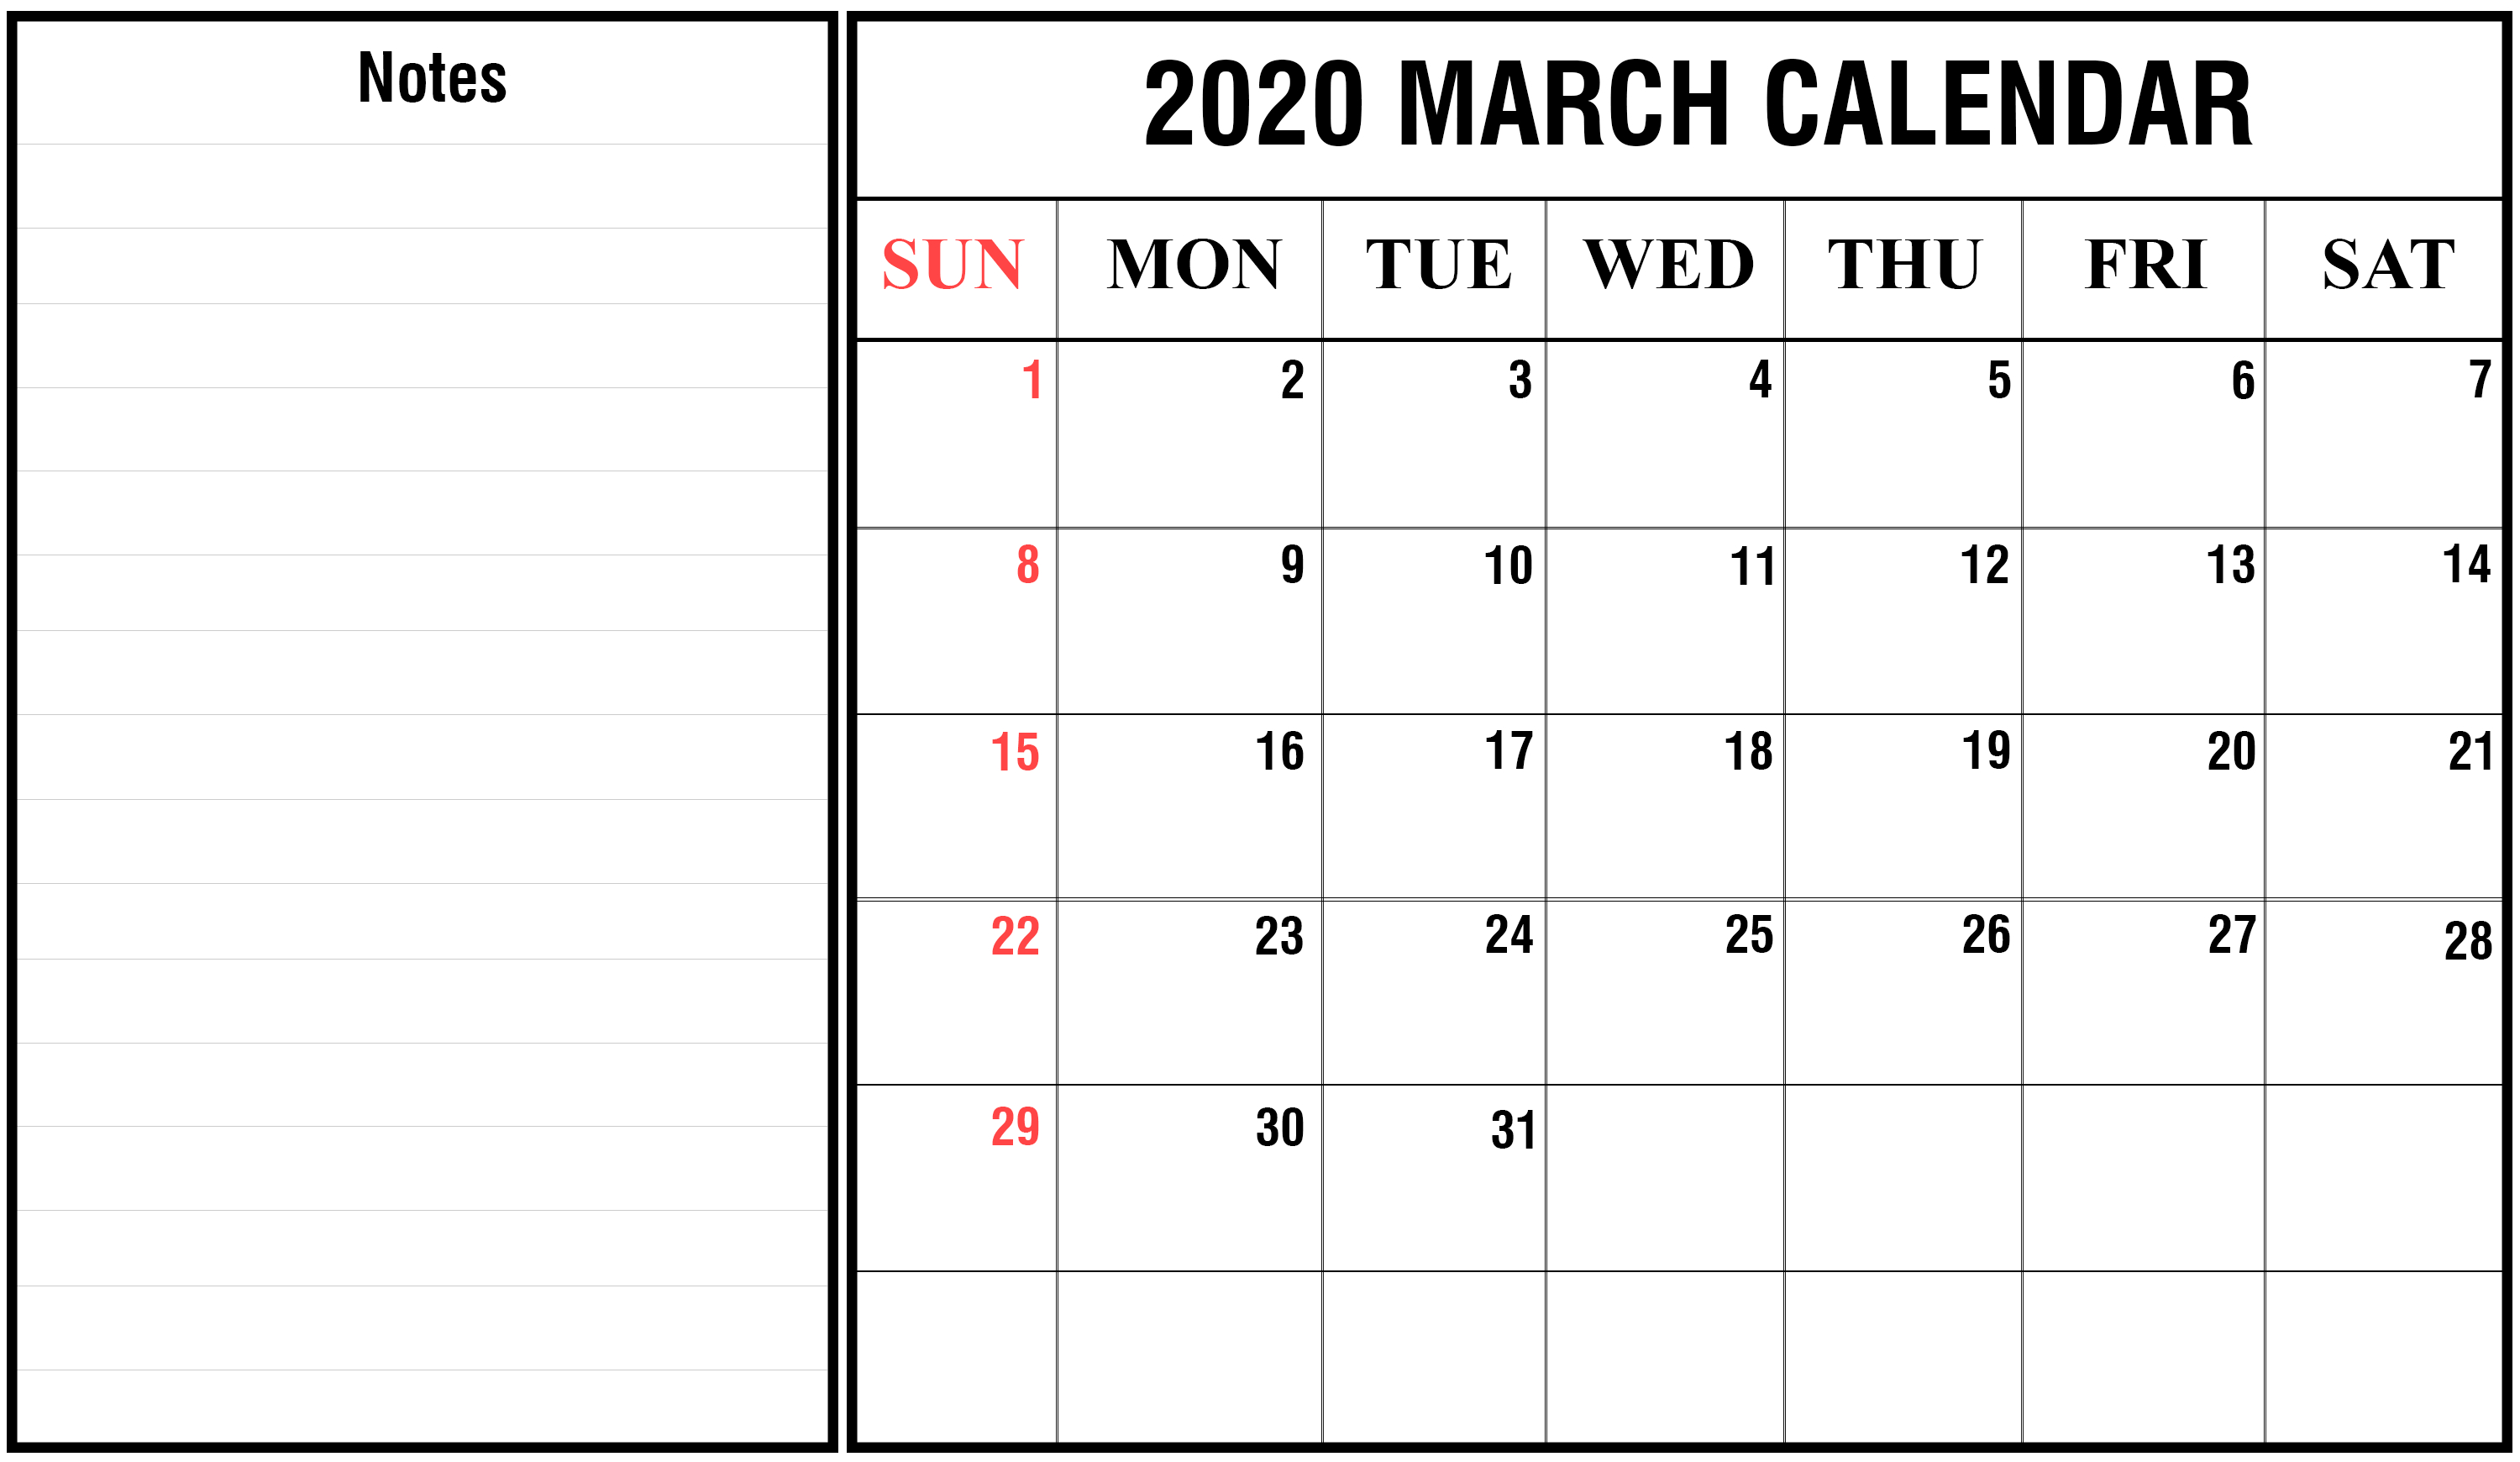 Free Printable March Calendar 2020 Blank Template Editable with regard to Free Printable 2020 Calendar To I Can Edit